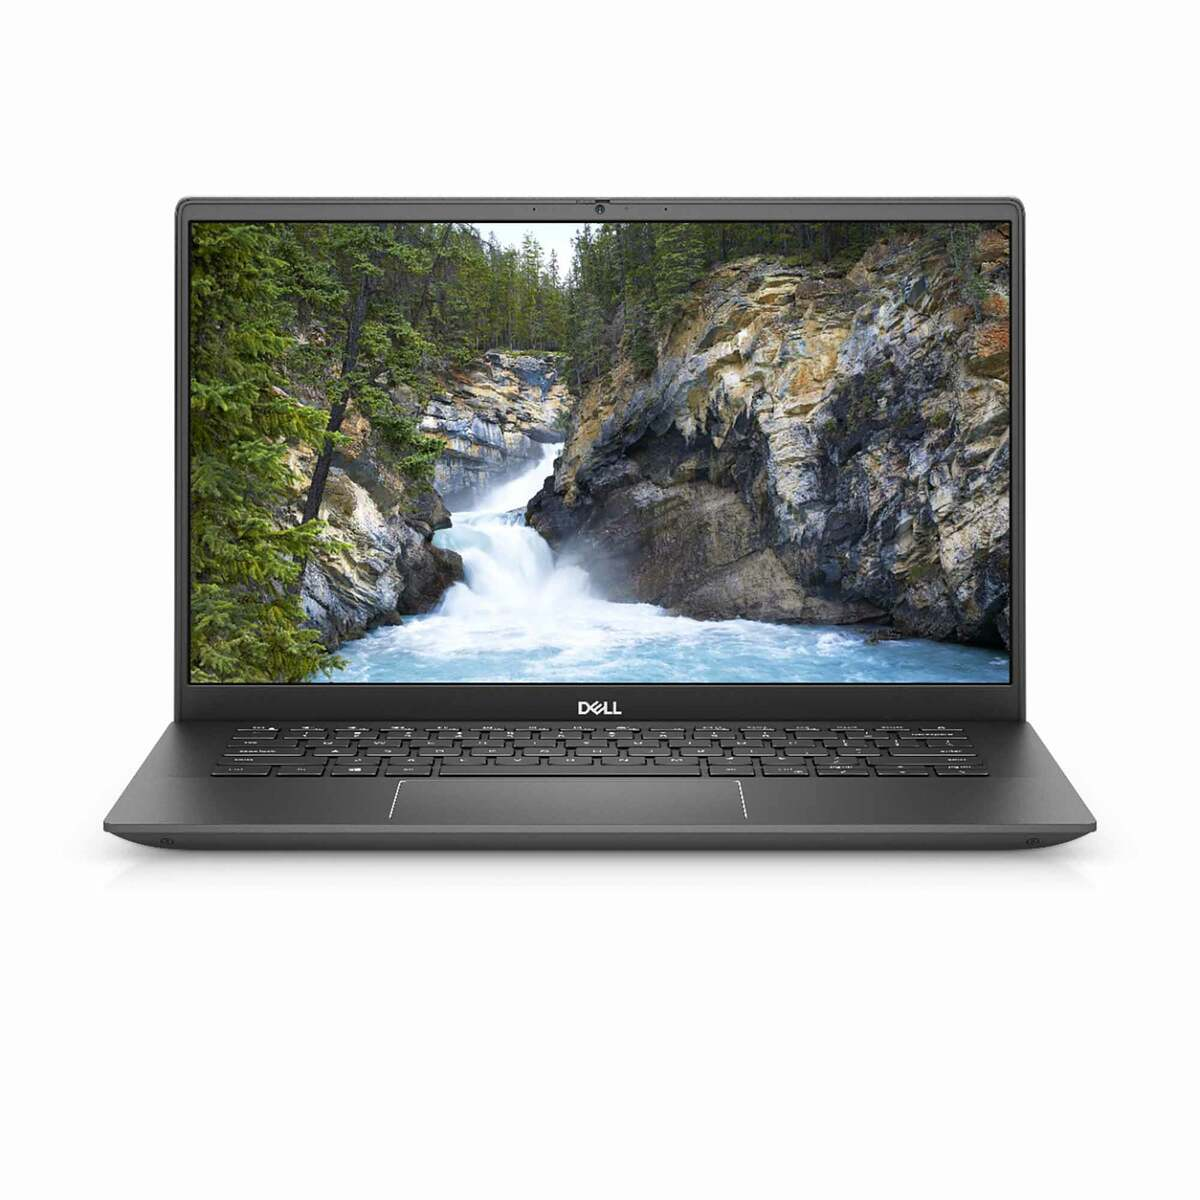 "Dell Vostro 5401 (5401-VOS-4106-GRY) Laptop, Intel Core i5-1035G1, 14"" FHD, 8GB RAM, 256GB SSD, Intel UHD Shared Graphics, Windows 10, Gray"